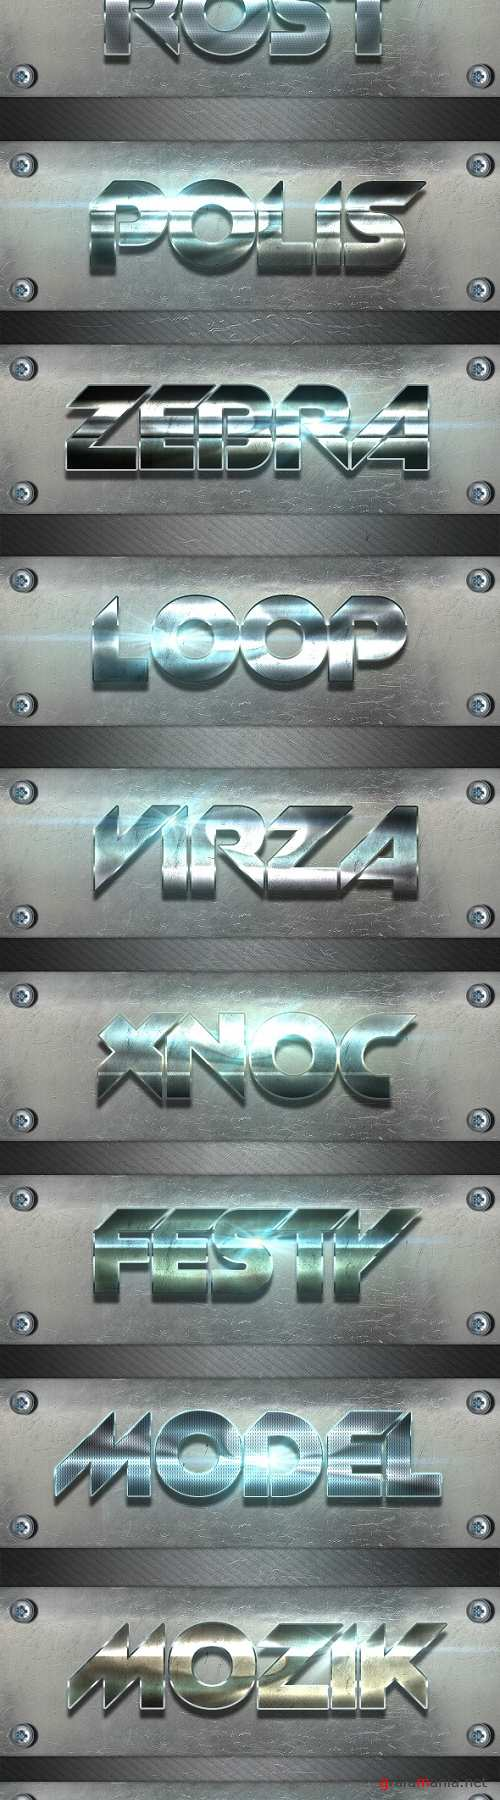 12 Collection Metal Photoshop Text Styles   Text Effects 24727151